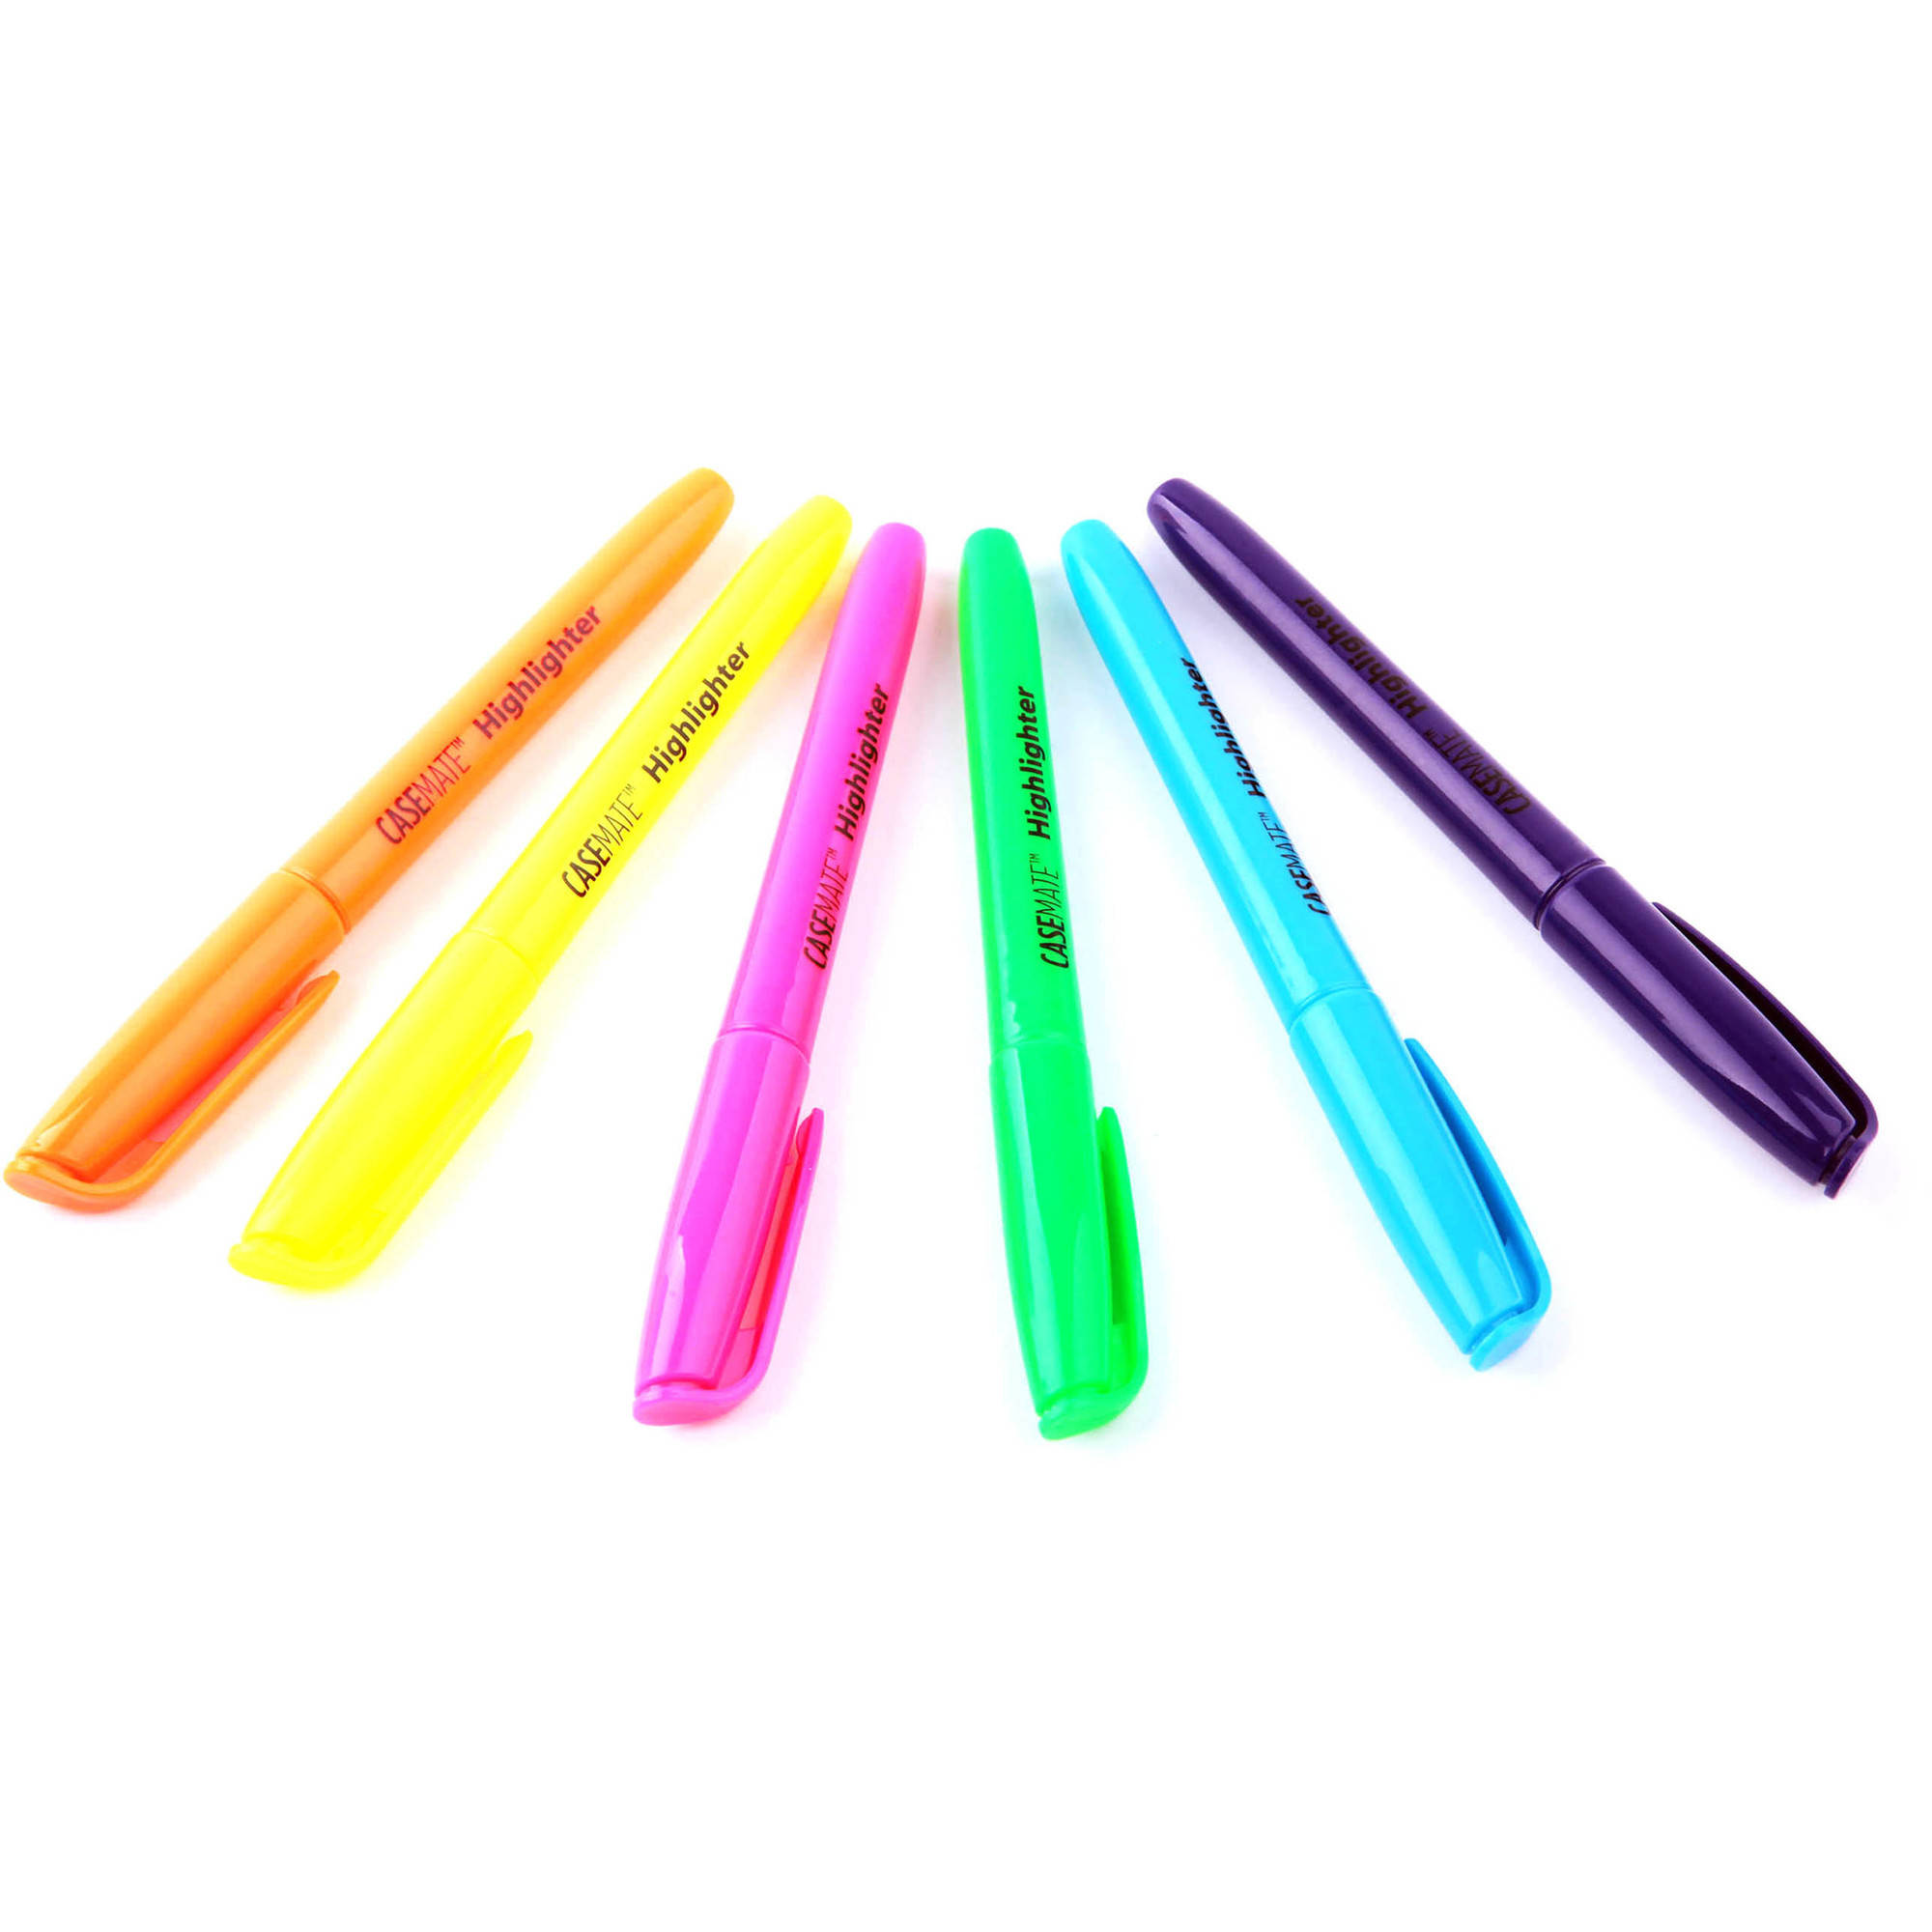 CaseMate Highlighters, Chisel Tip, Assorted Colors, 24pk